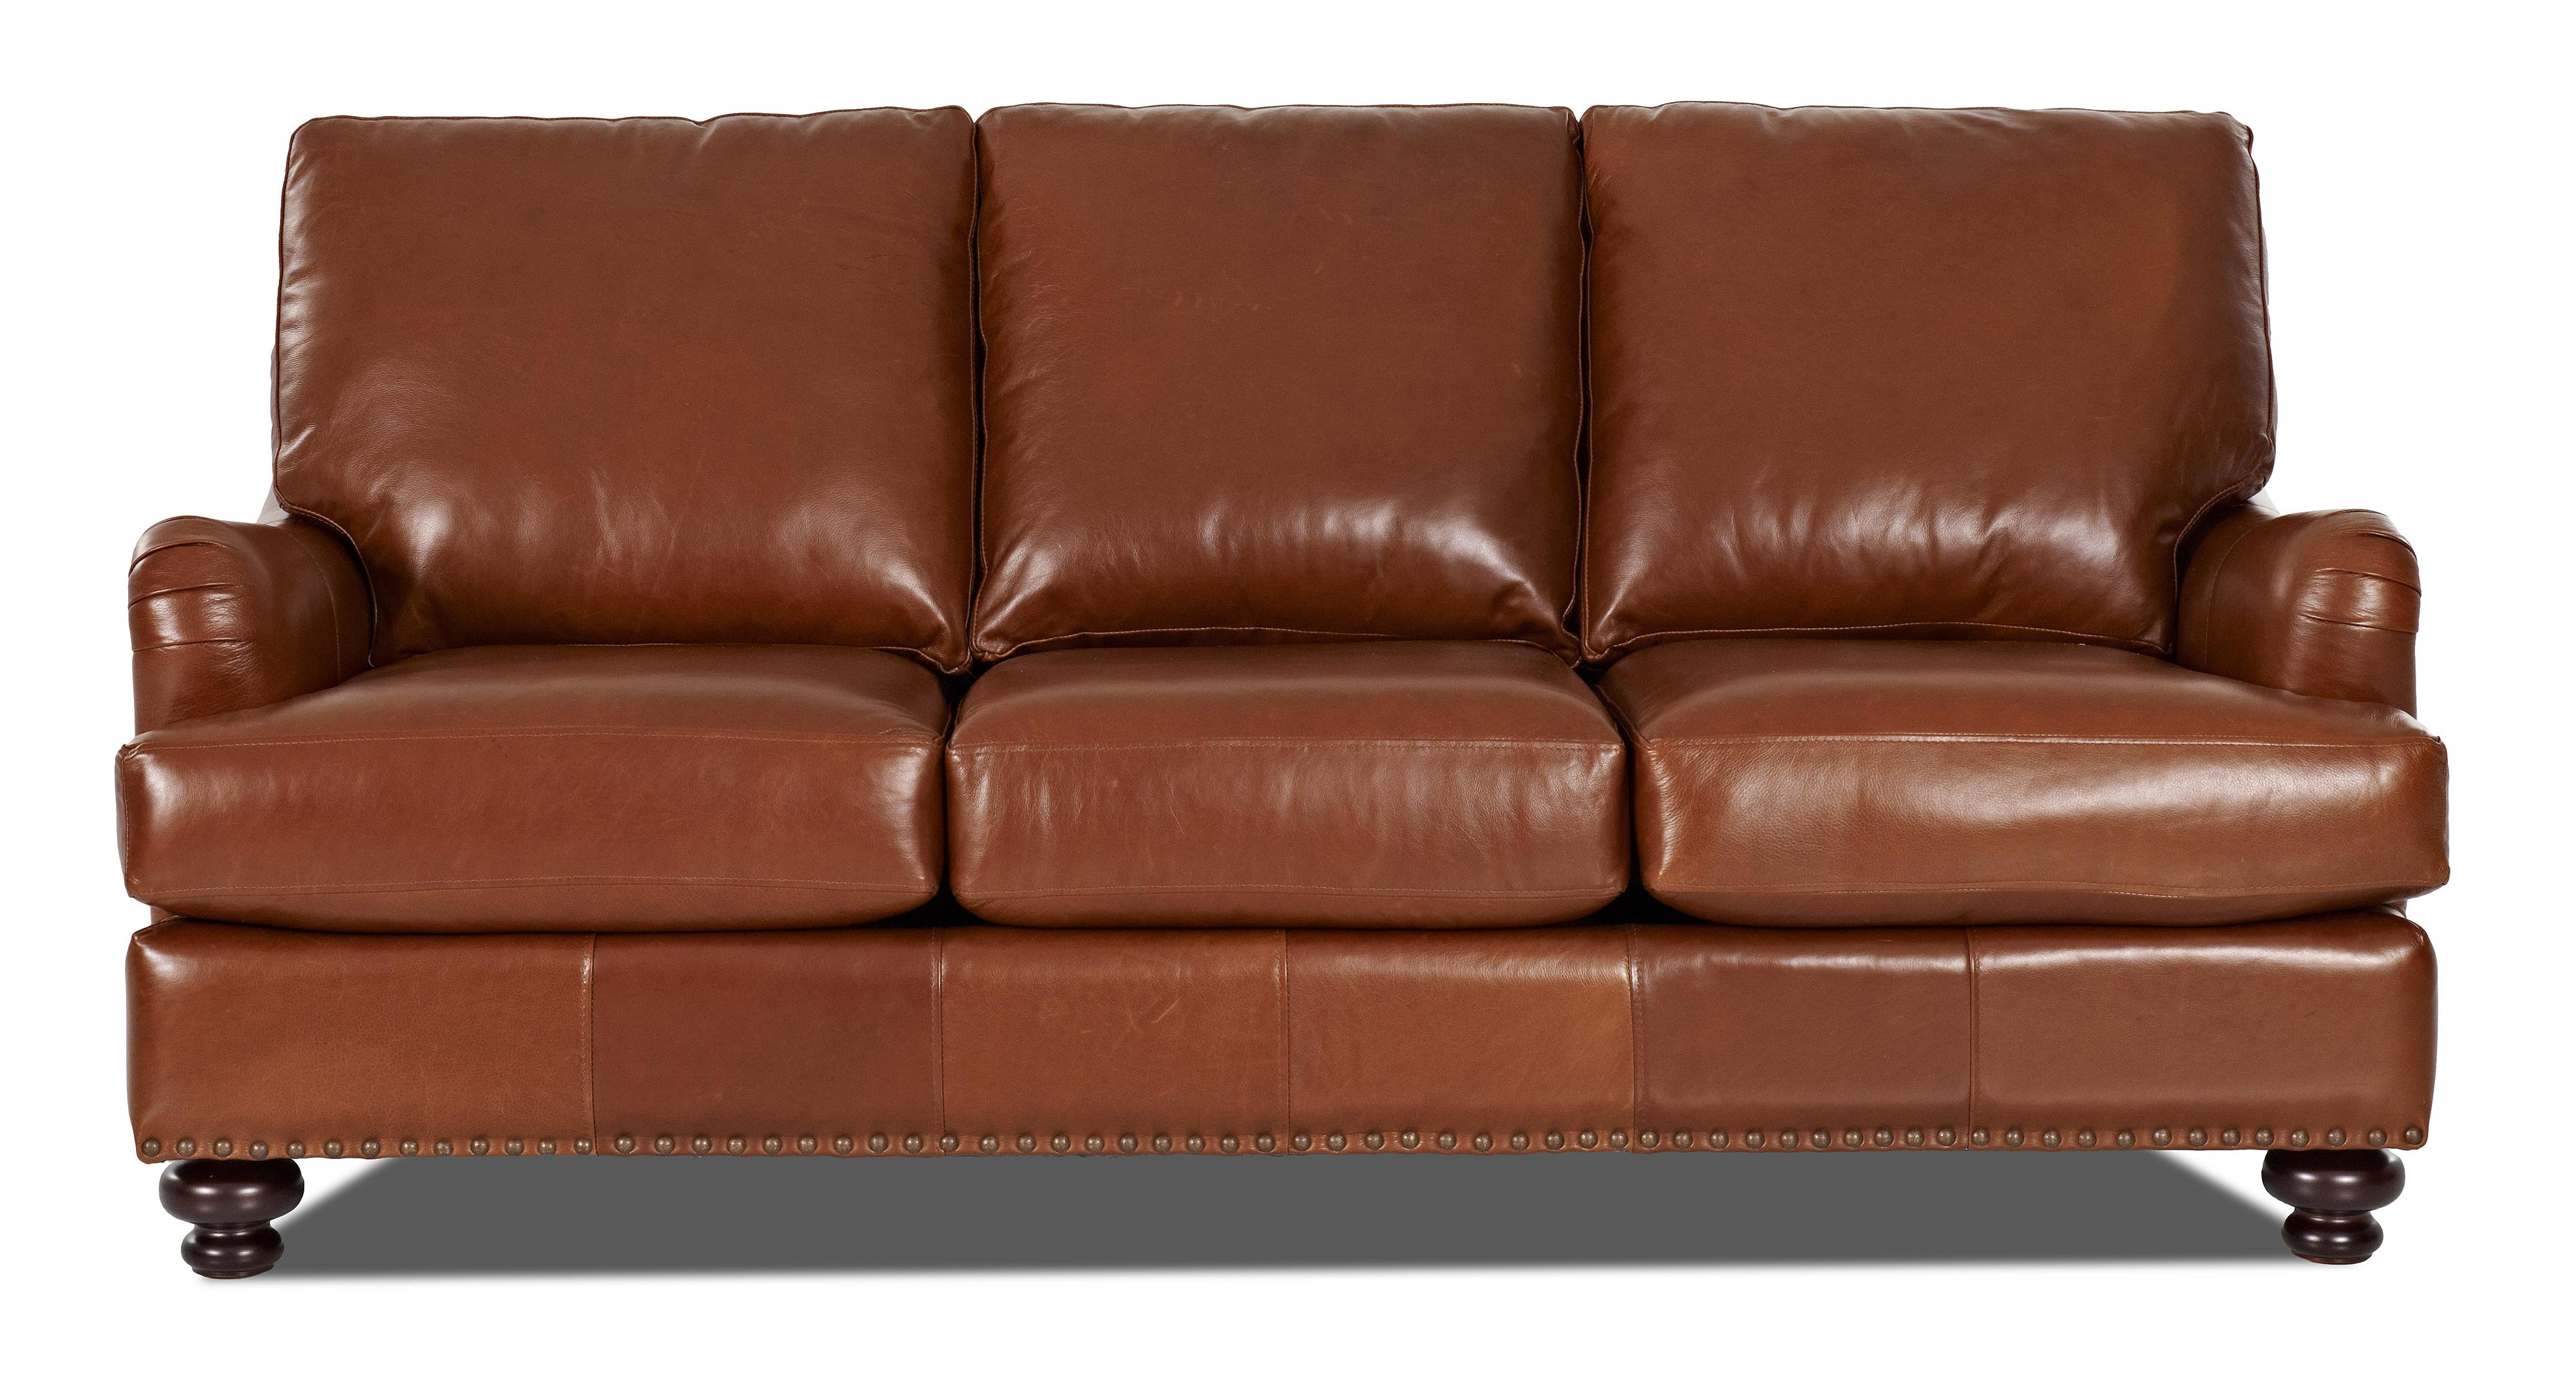 Klaussner Loxley Stationary Sofa - Item Number: LT89910S-Savoy Chestnut